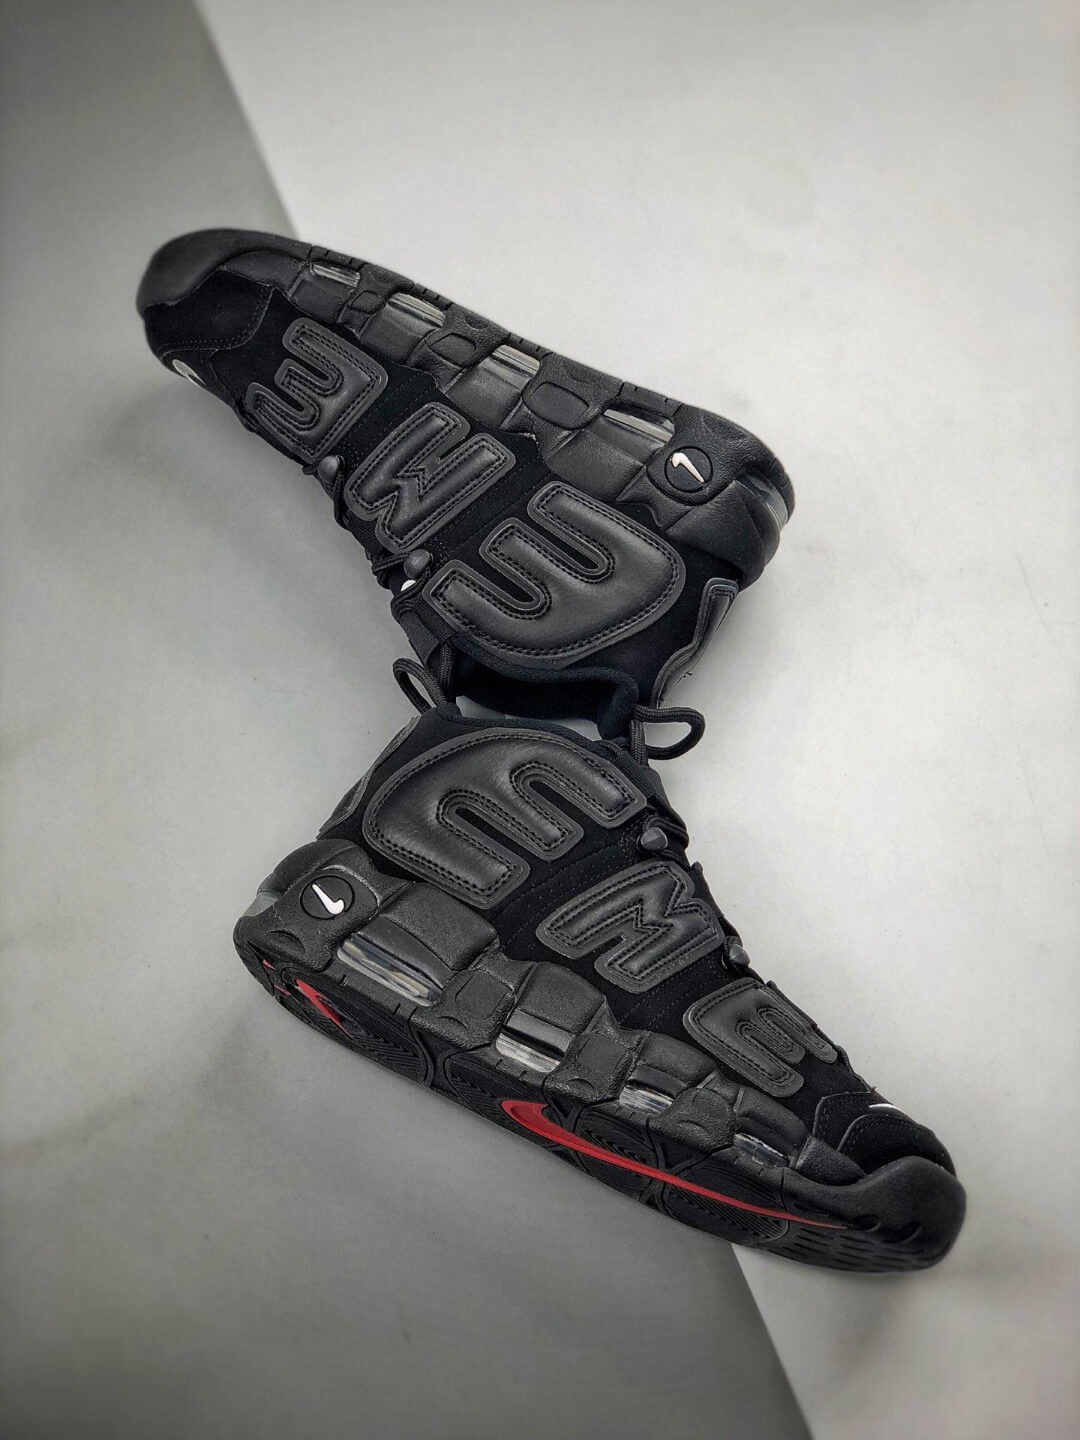 The Nike Supreme x Air More Uptempo Black Basketball Shoes Premium Suede Upper Rep Sneakers 08